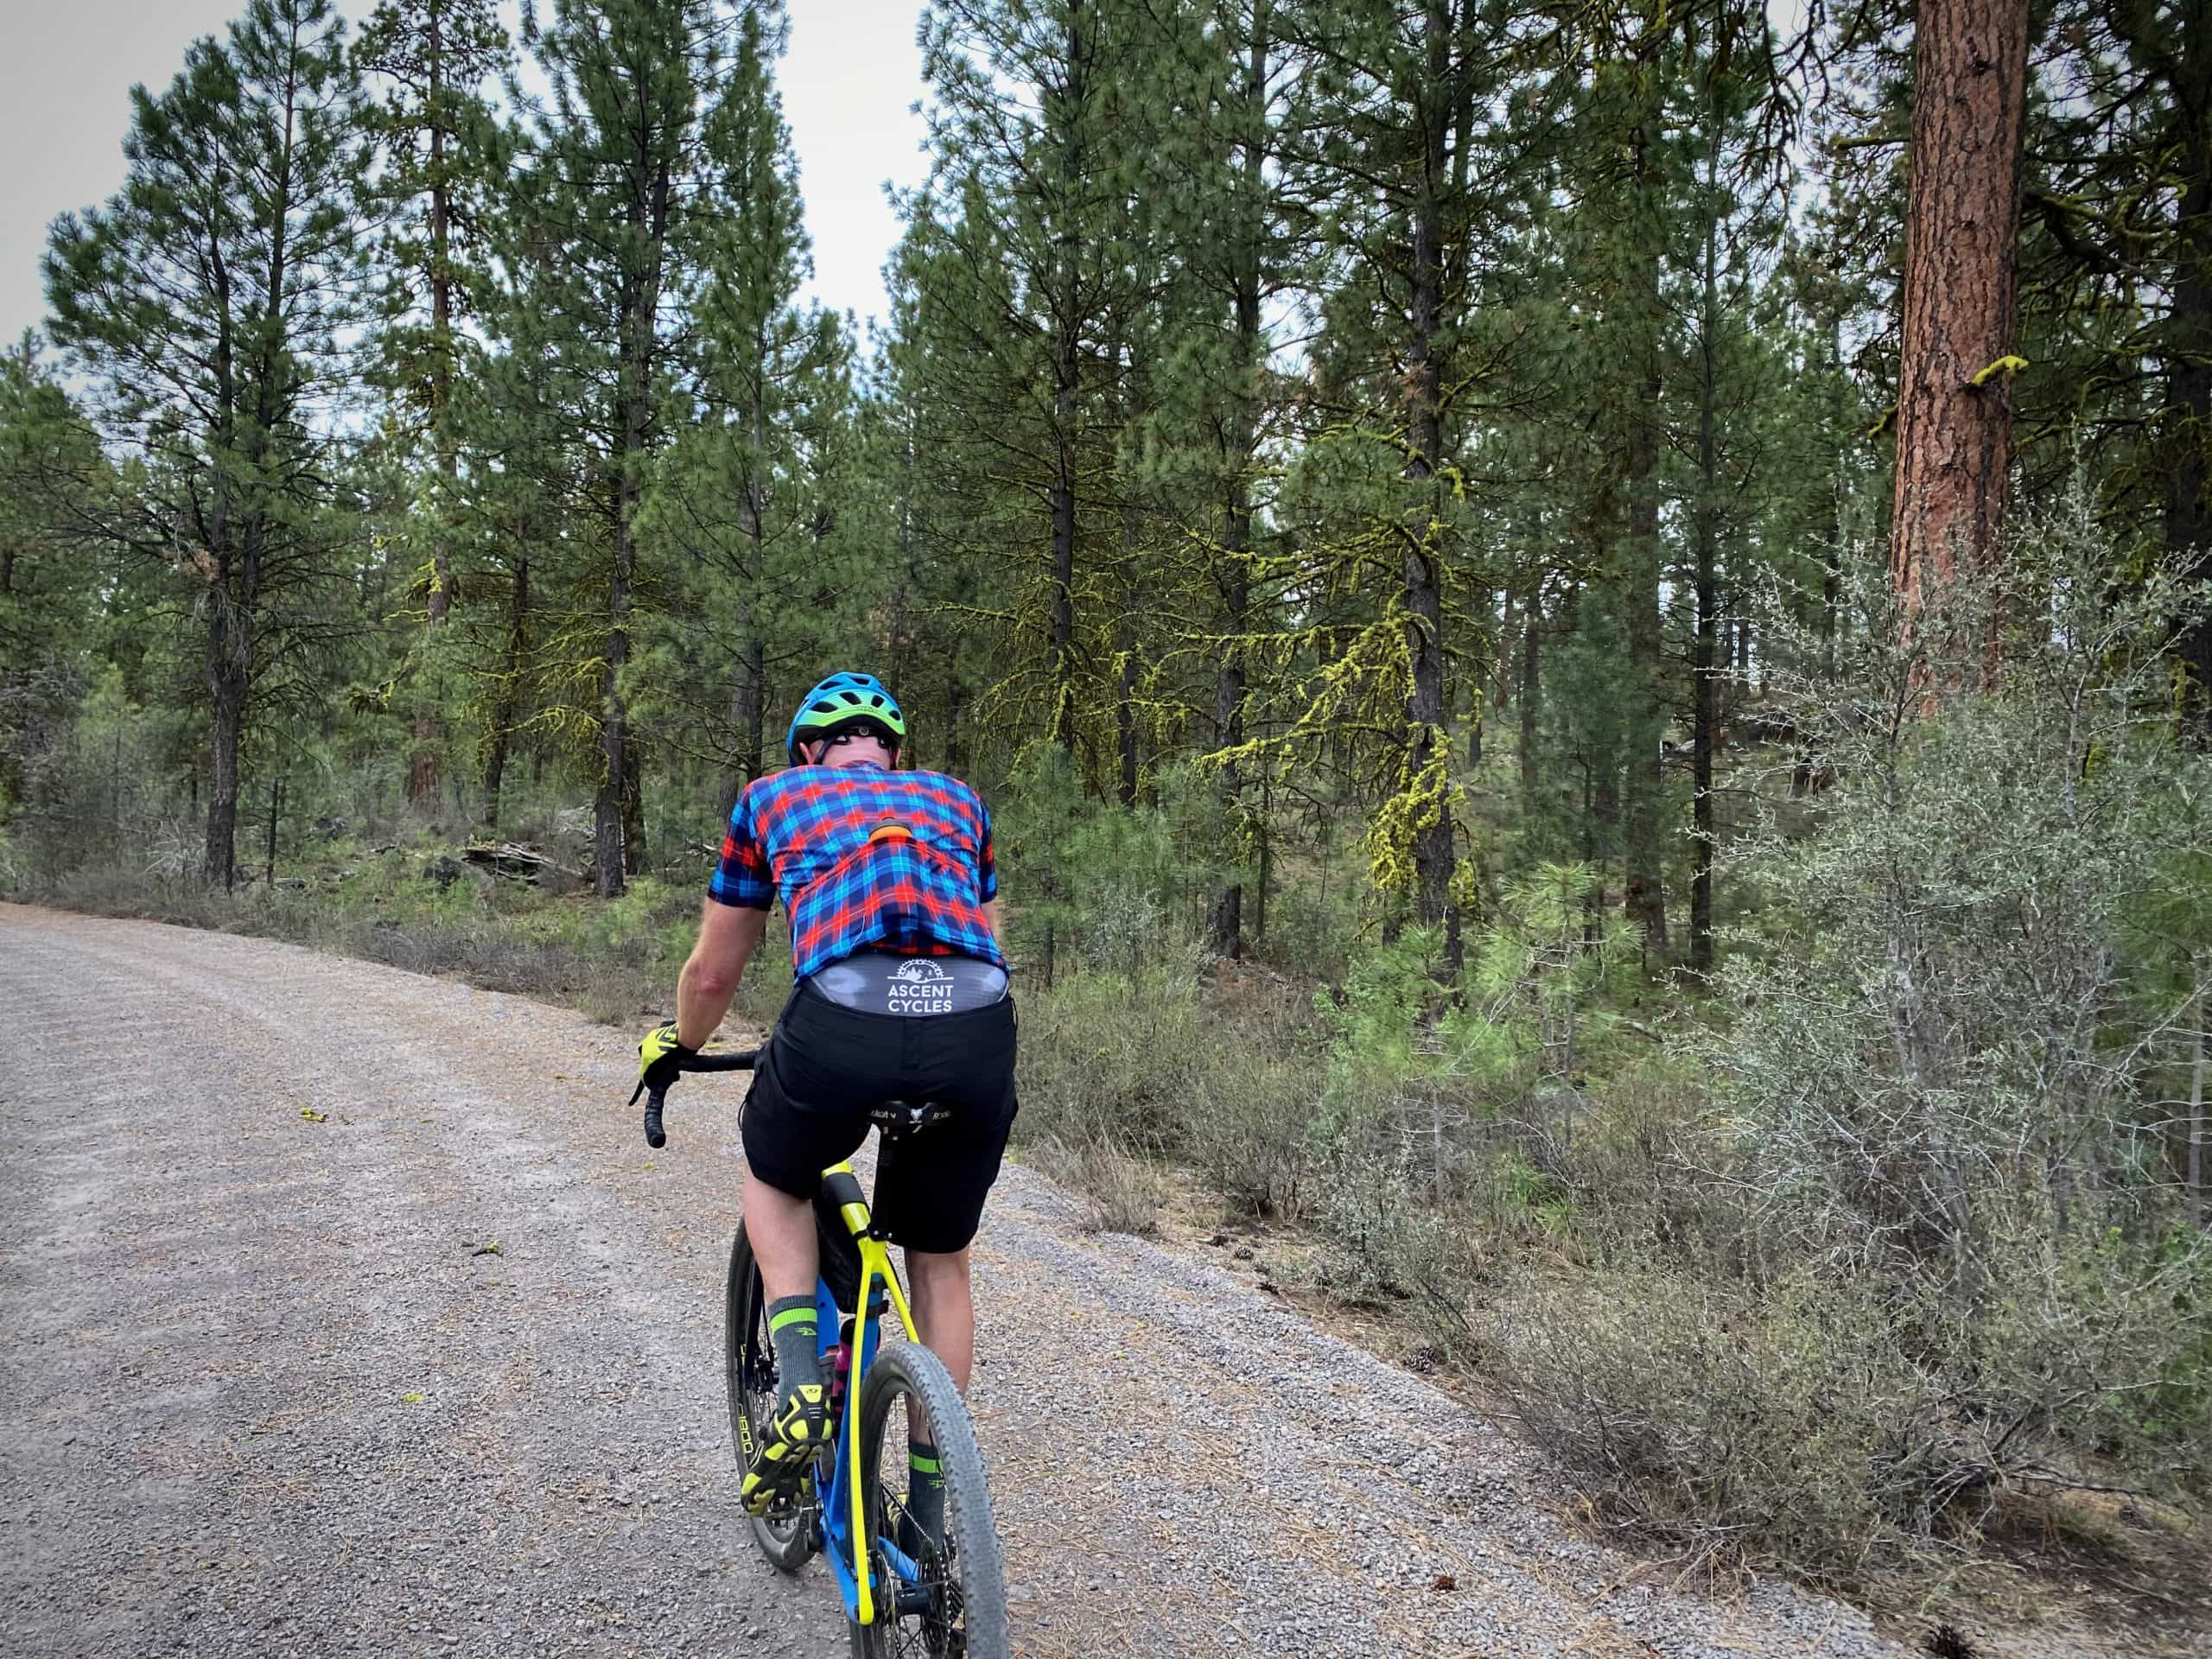 Cyclist riding National Forest Service road in the lower Ochoco National Forest in Harney County, Oregon.